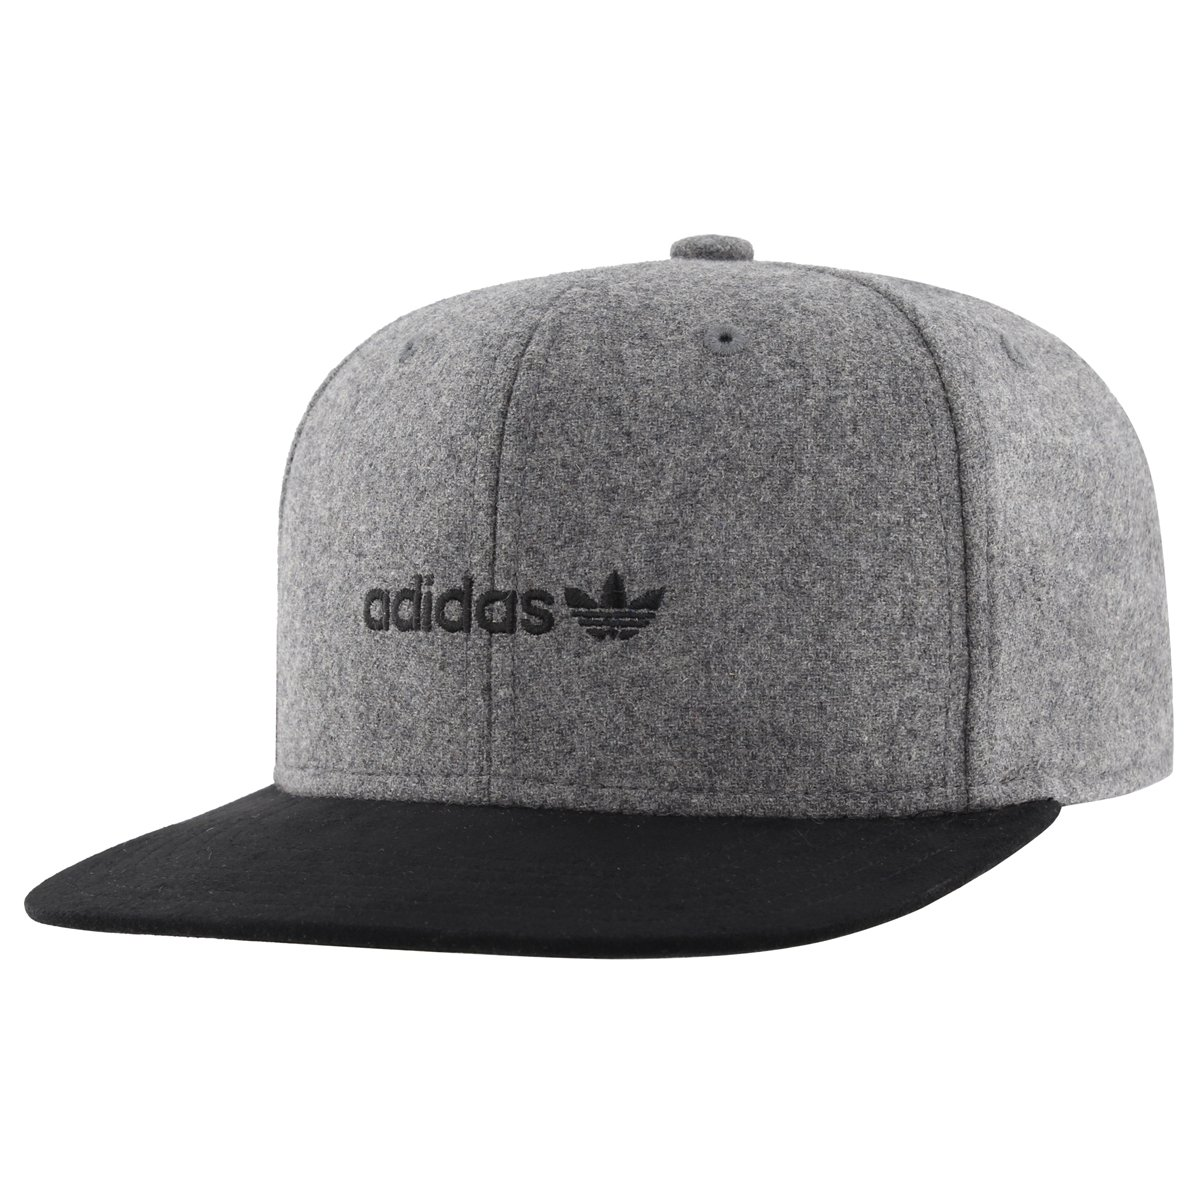 24388ffe6c3 Galleon - Adidas Men s Originals Snapback Flatbrim Cap